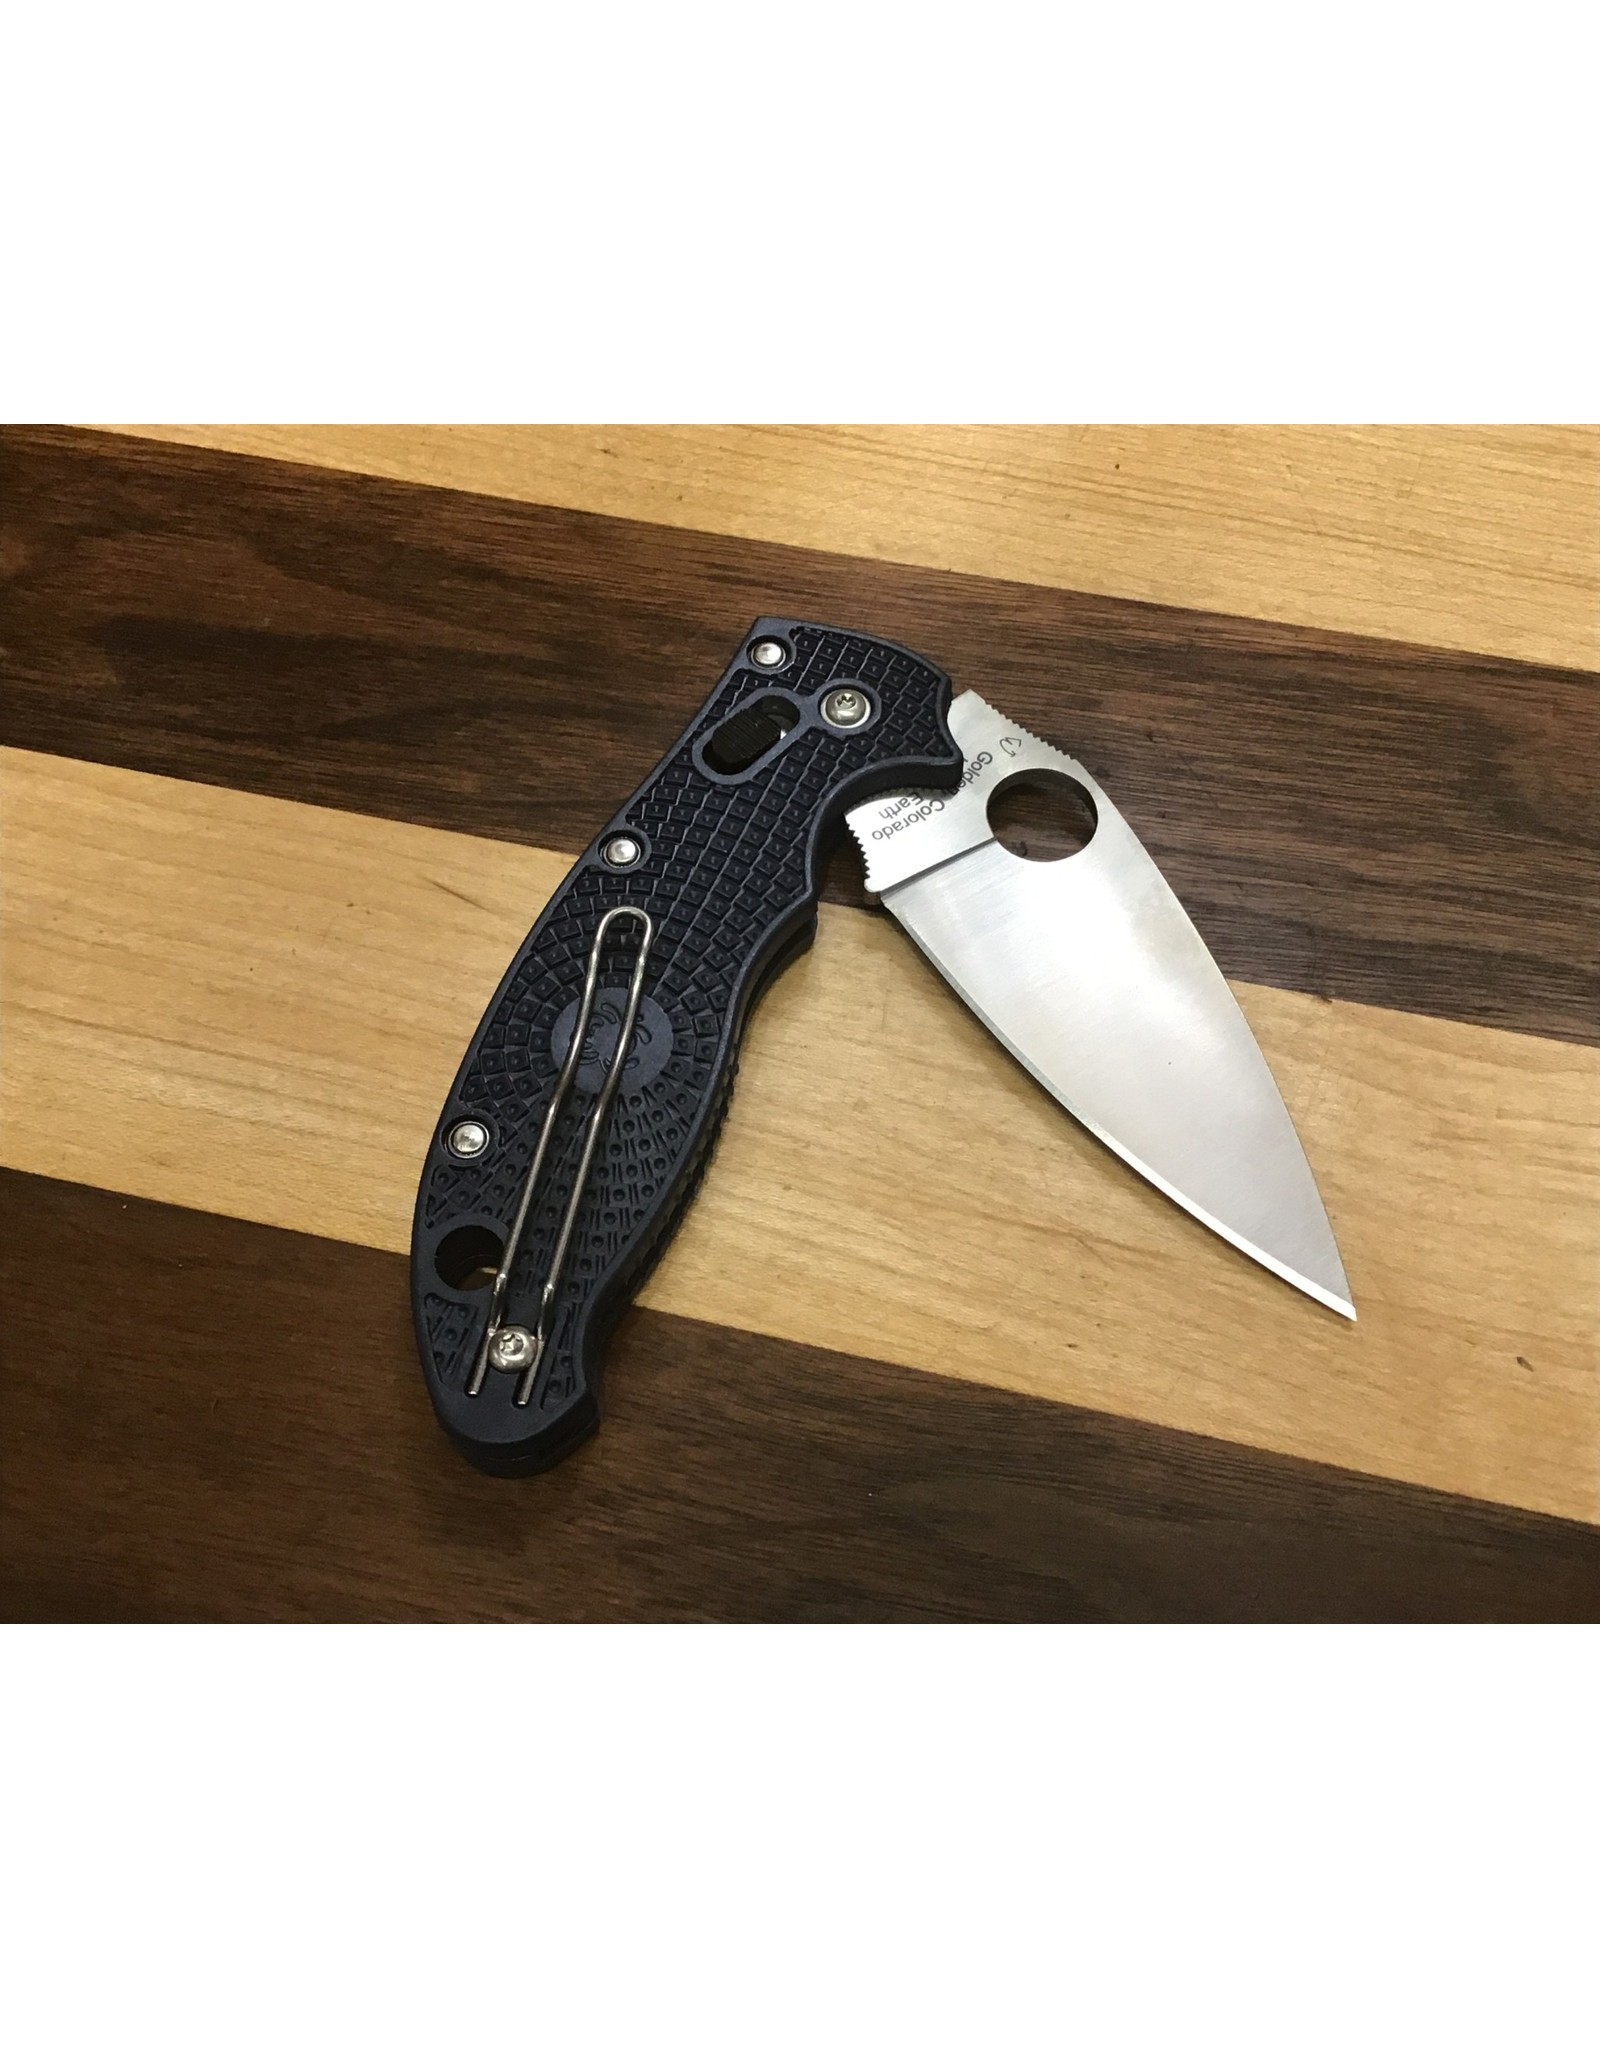 Spyderco Spyderco Manix 2 in CPM S110V with Dark Blue FRN